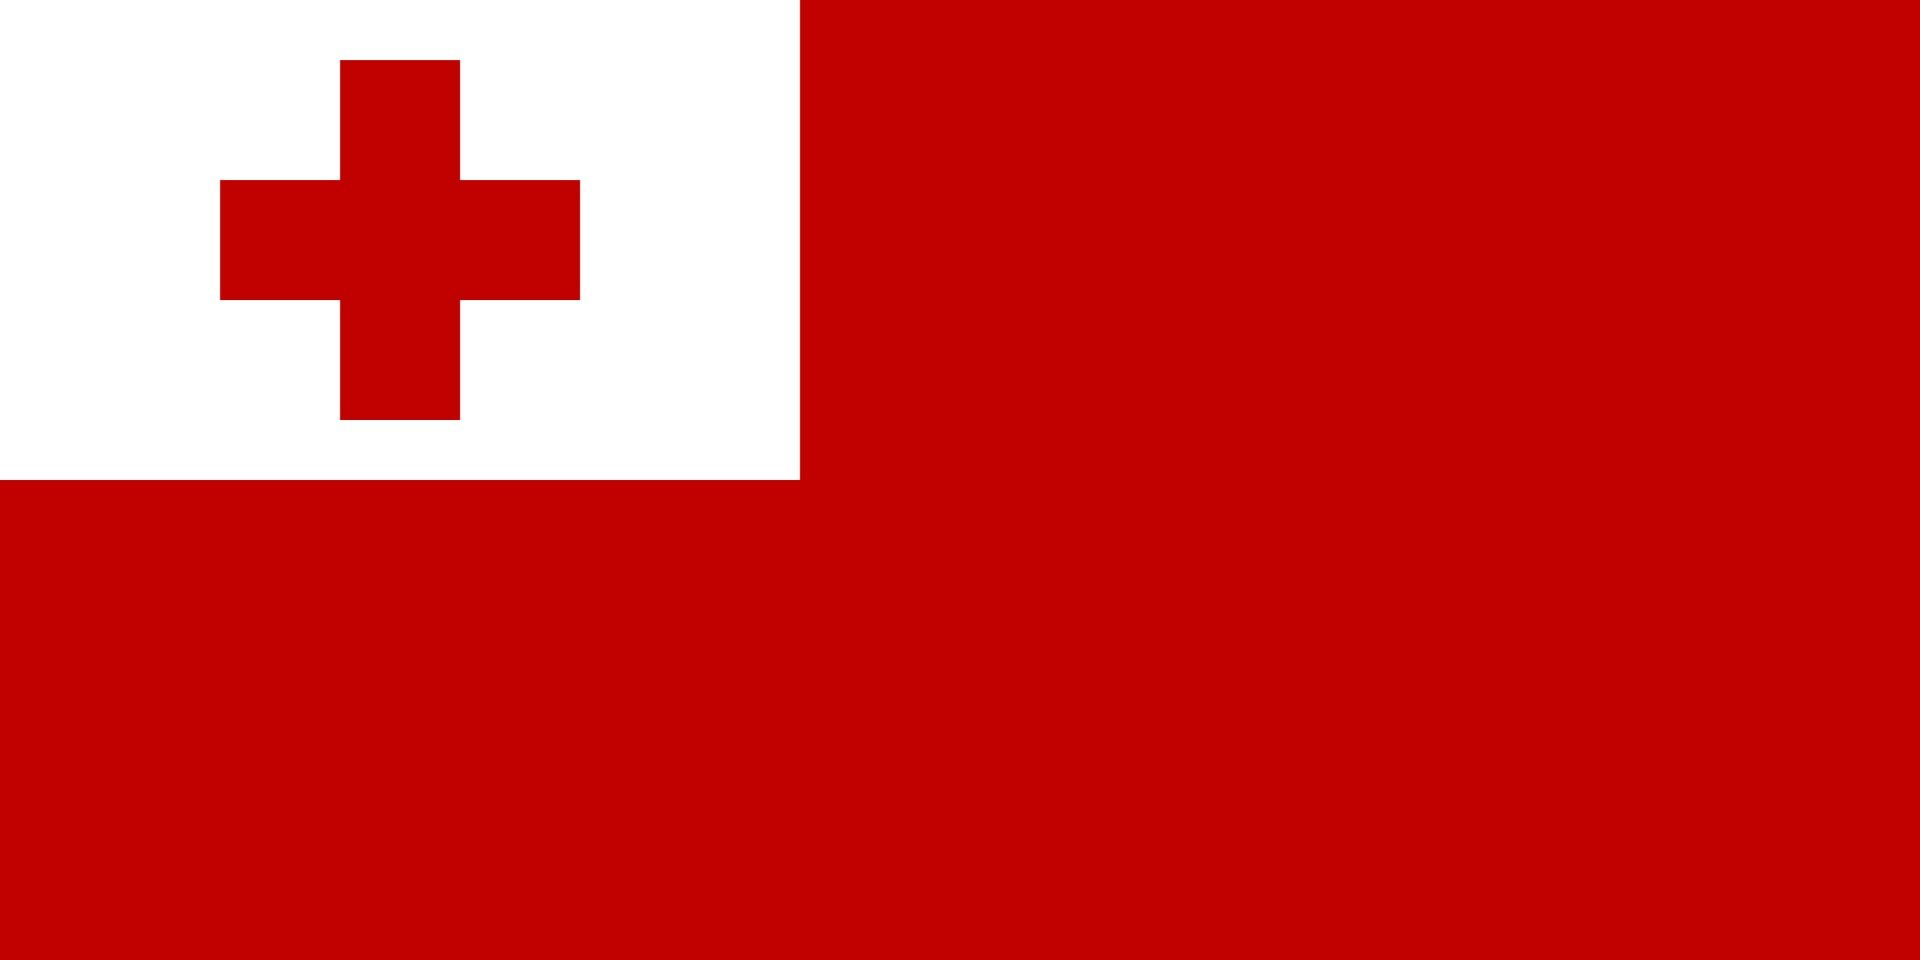 Flag of Tonga wallpaper Flags wallpaper Tonga Flags of the 1920x960